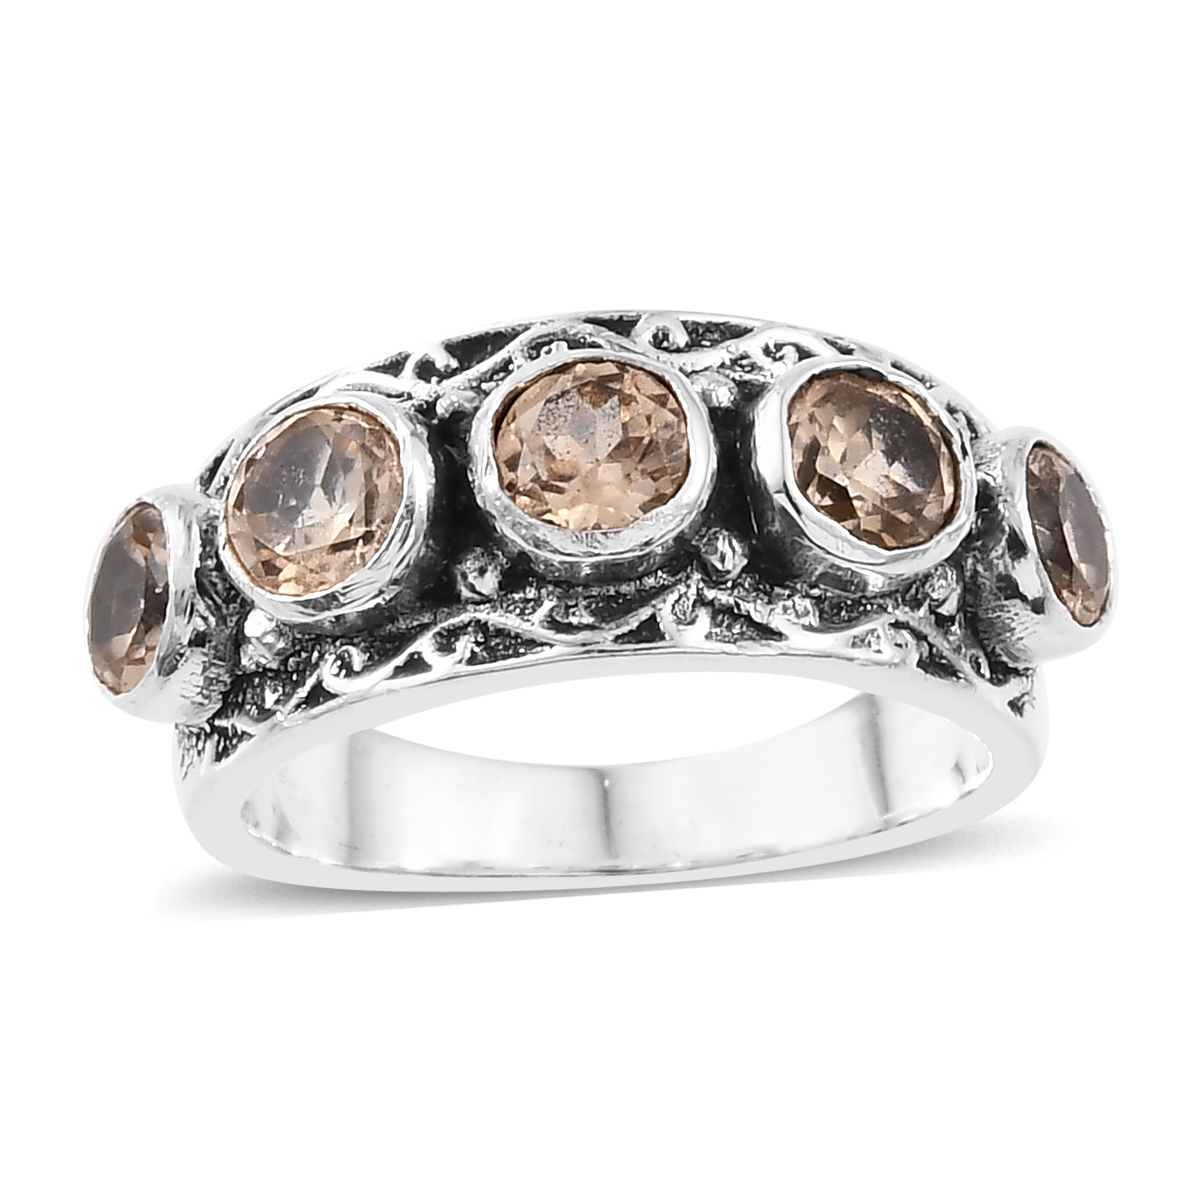 Artisan Crafted Ceylon Imperial Garnet Ring in Sterling Silver (Size 9.0) 1.69 ctw